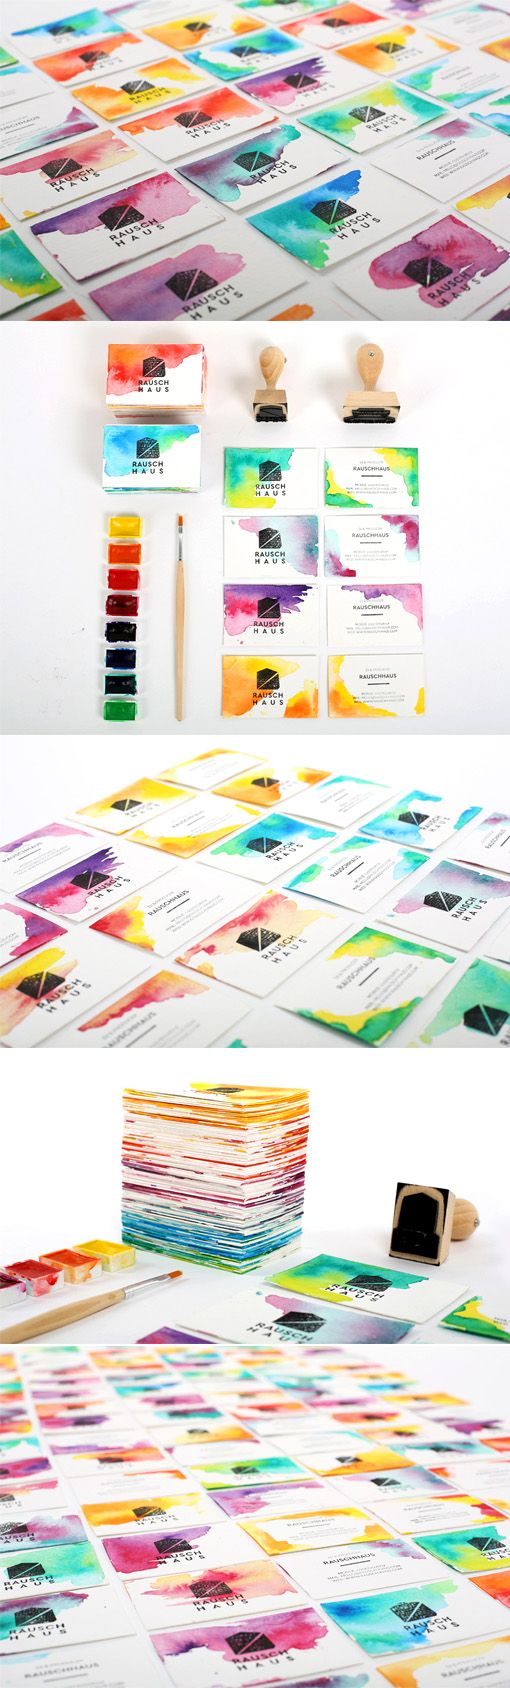 113 best Business Card Love images on Pinterest | Business card ...